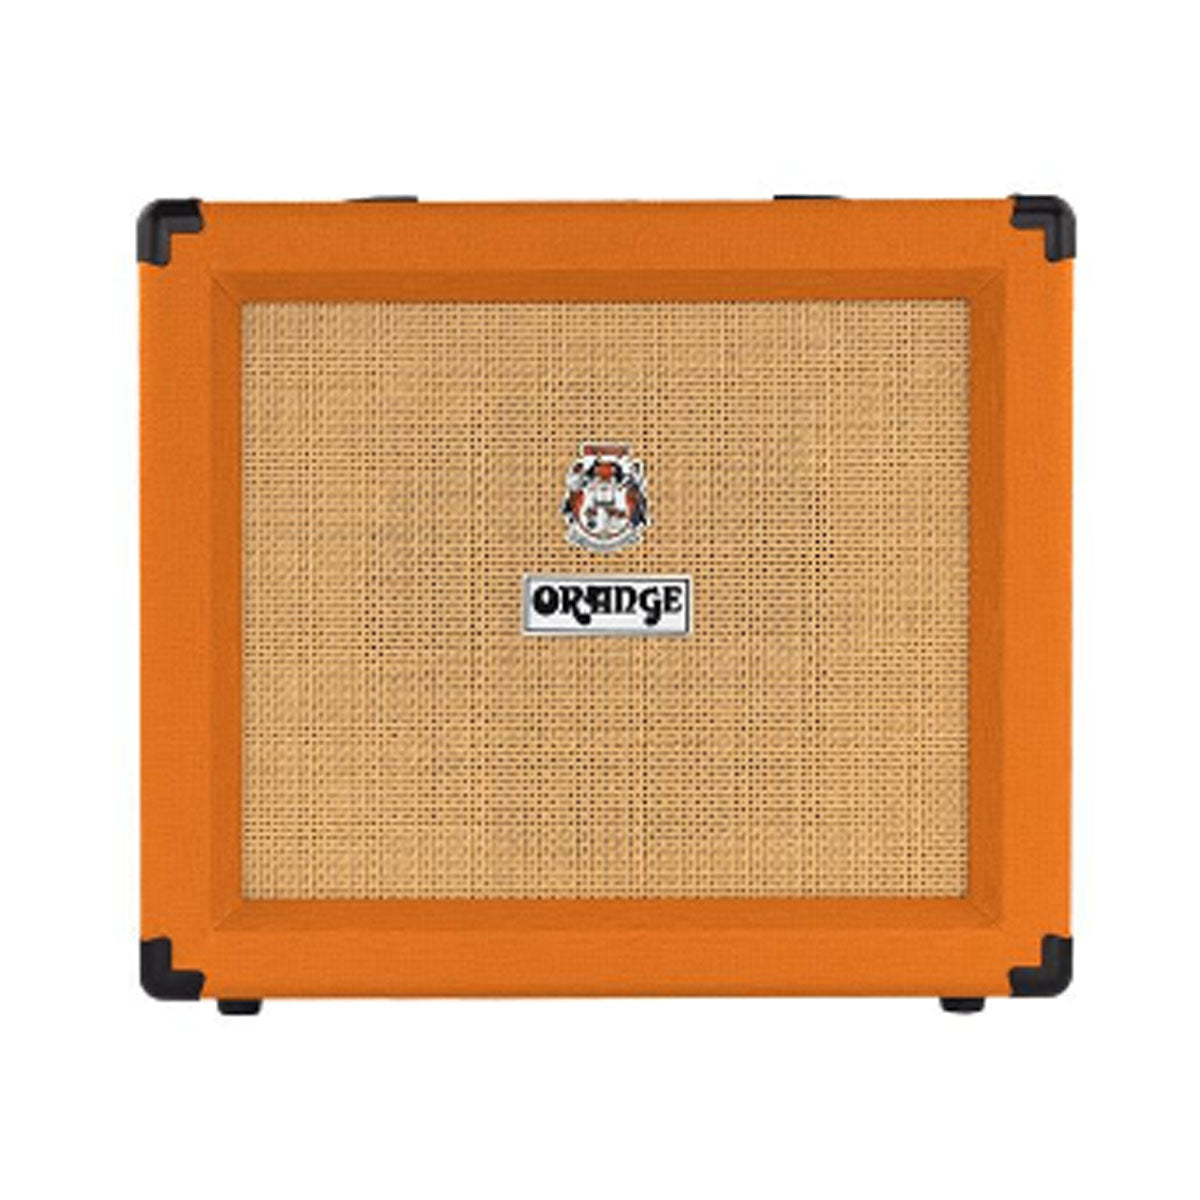 Orange Crush 35RT Guitar Amplifier 35w Combo Amp w/ Reverb & Tuner